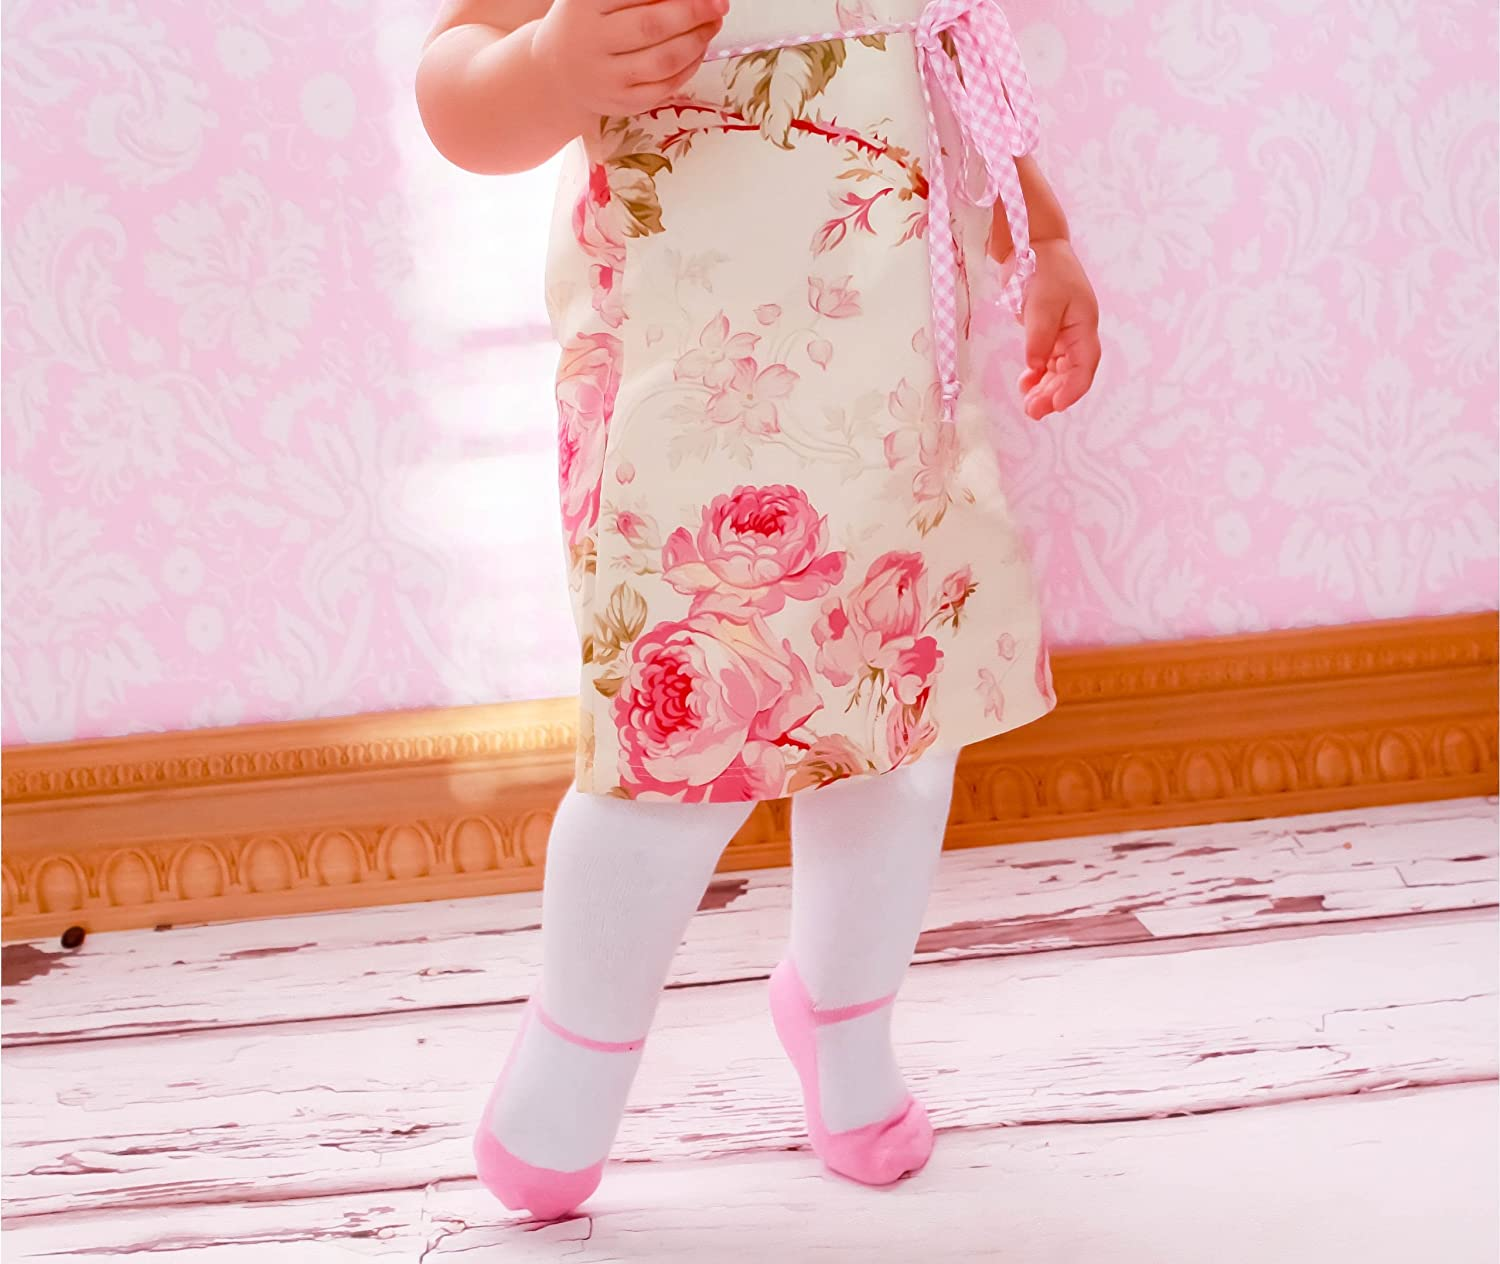 Baby Infant Toddler Shoe Look Tights Anti Slip Soles Soft Cotton Knit Mary Jane